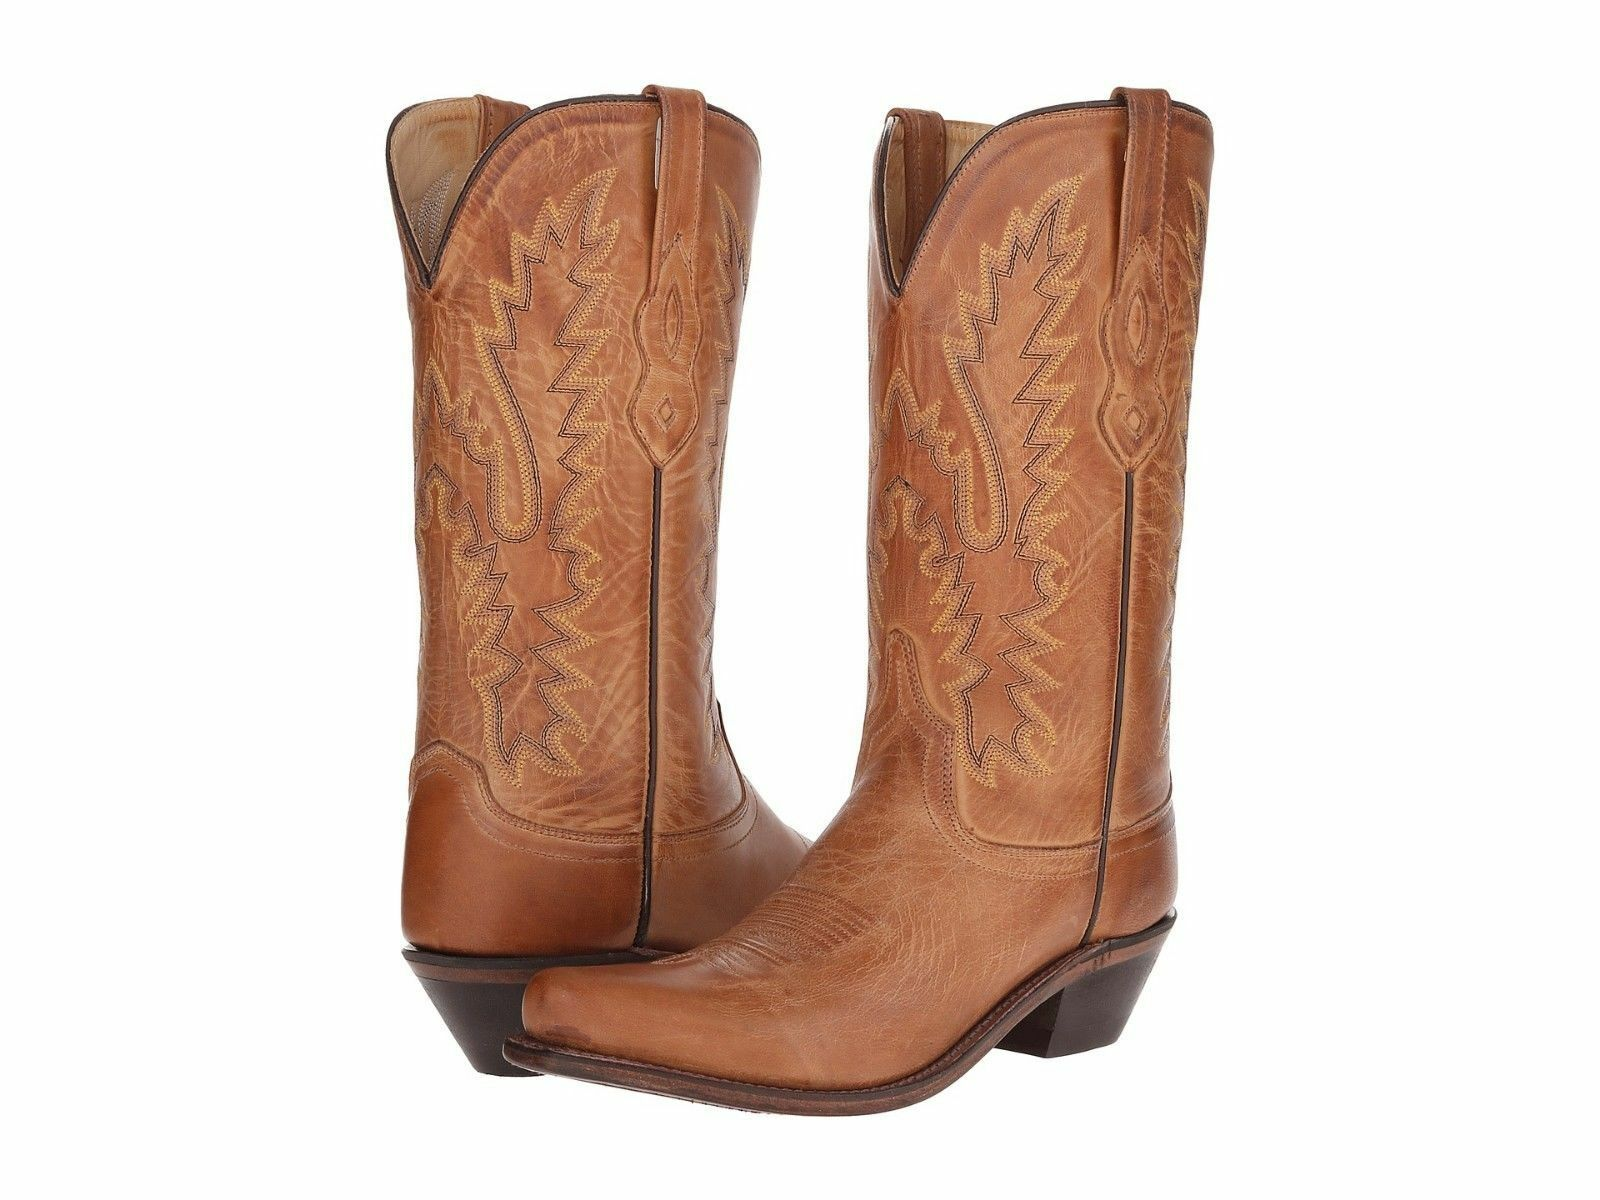 MEN'S OLD WEST BROWN LEATHER SNIP TOE WESTERN BOOTS MF1529